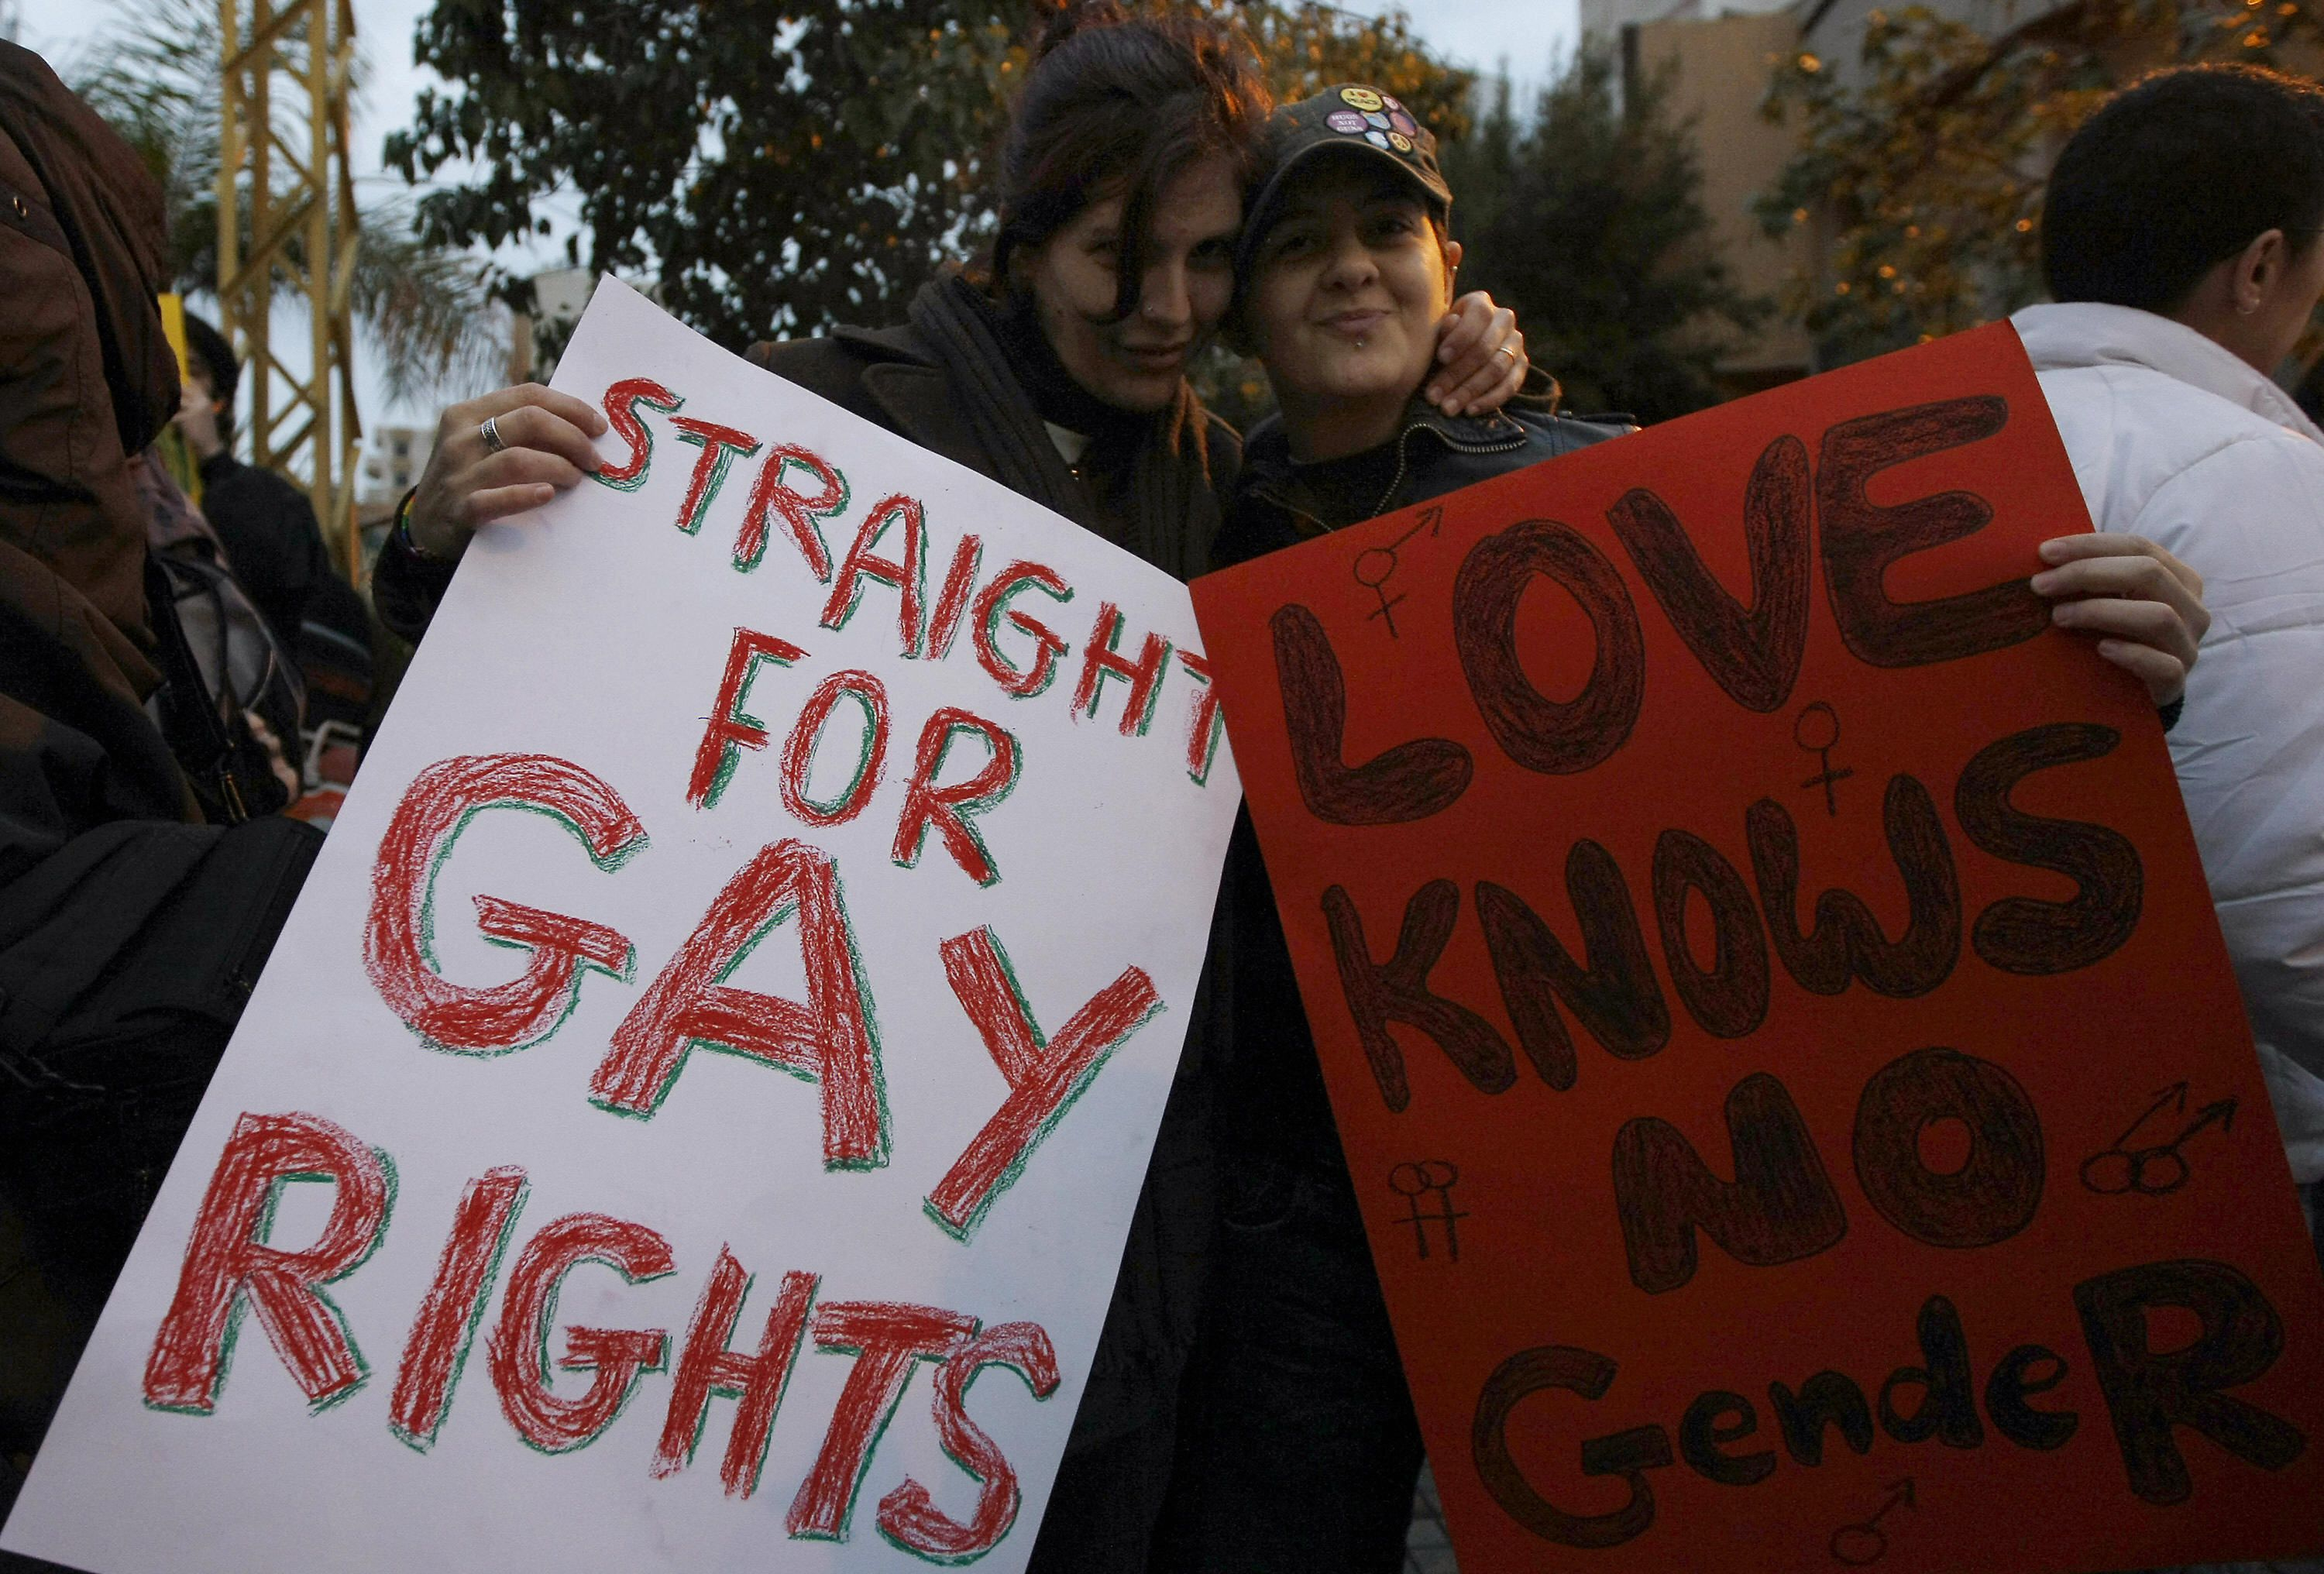 Groups against gay rights